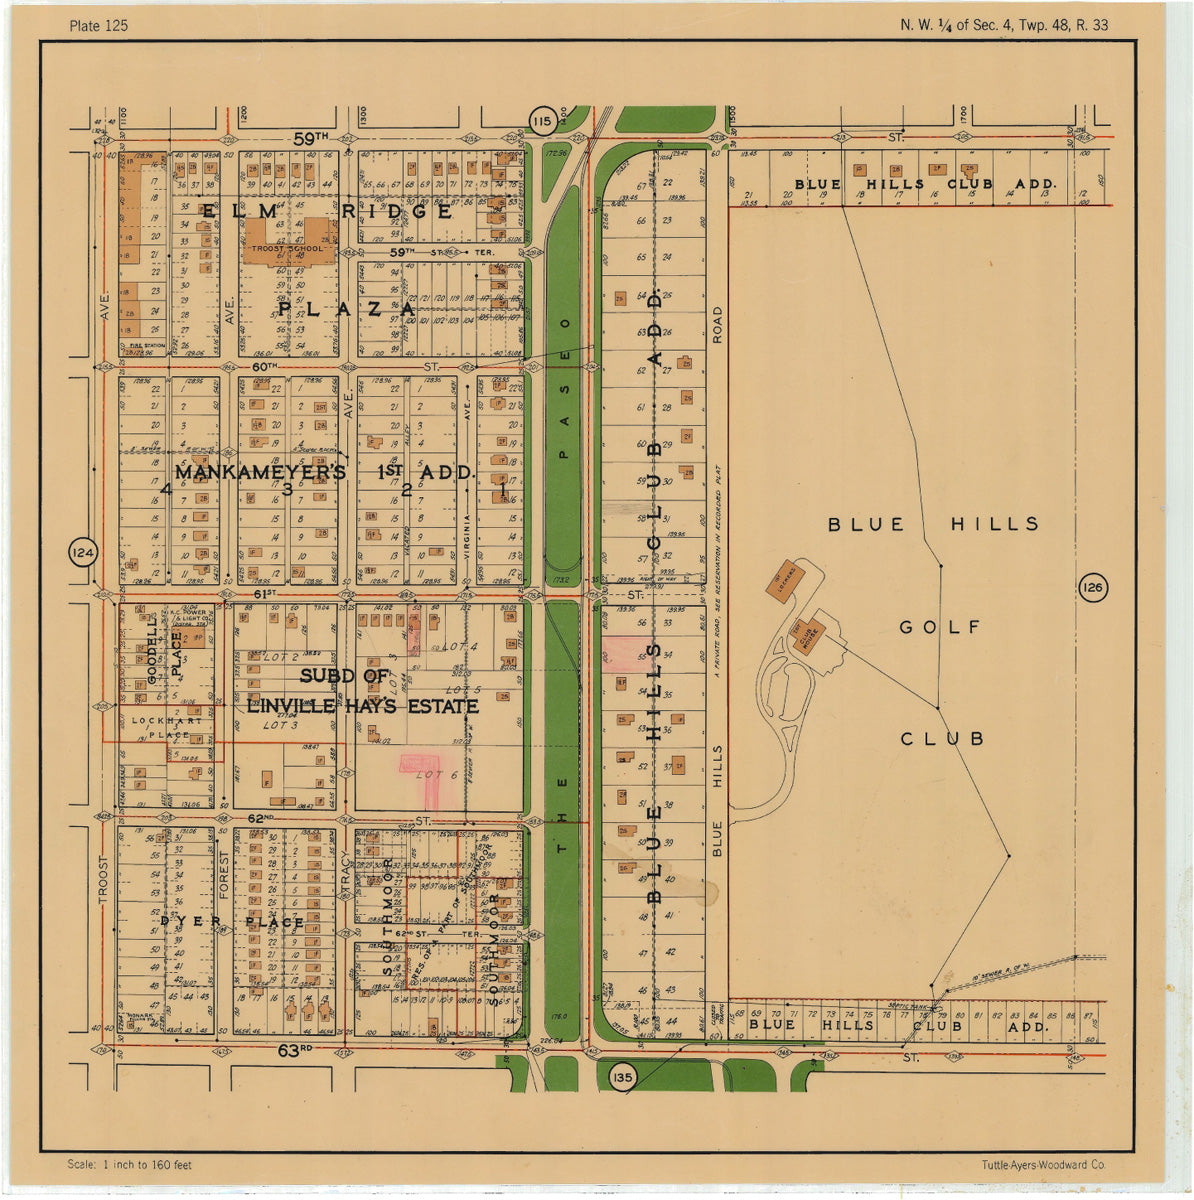 Kansas City 1925 Neighborhood Map - Plate #125 59th-63rd Troost-Blue Hills